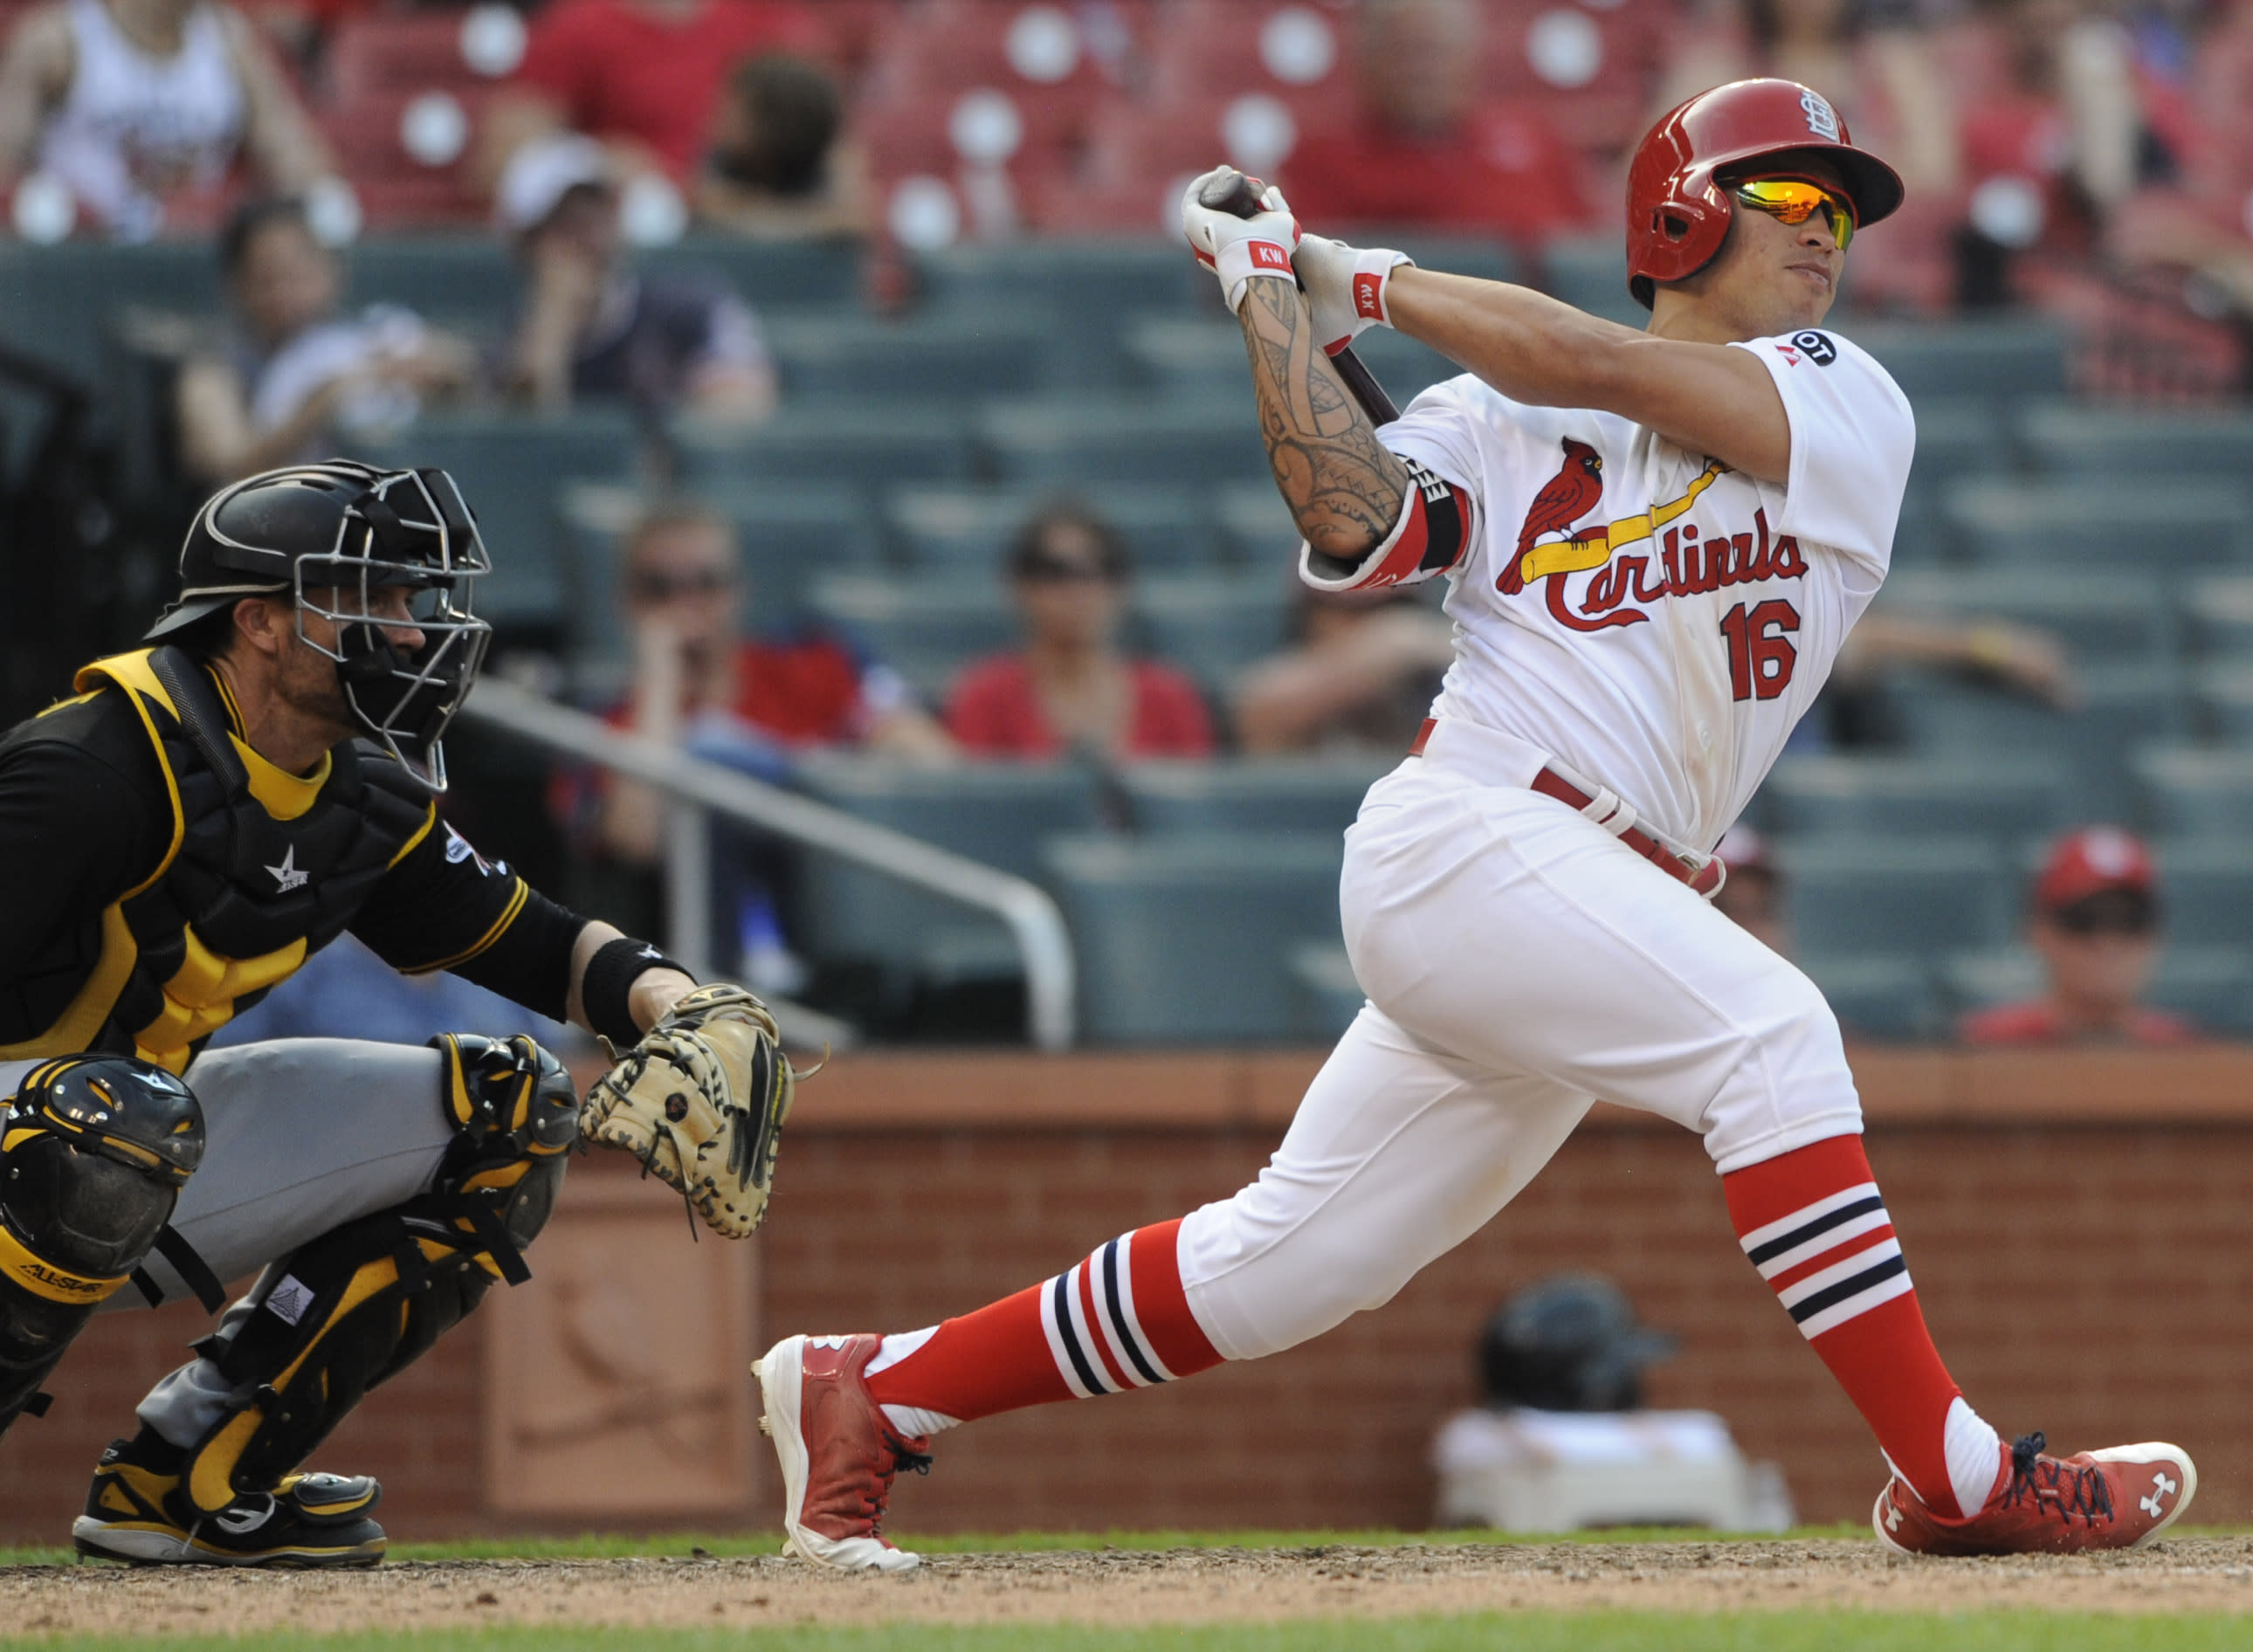 Cardinals win in extras again, beat Pirates 3-2 in 14